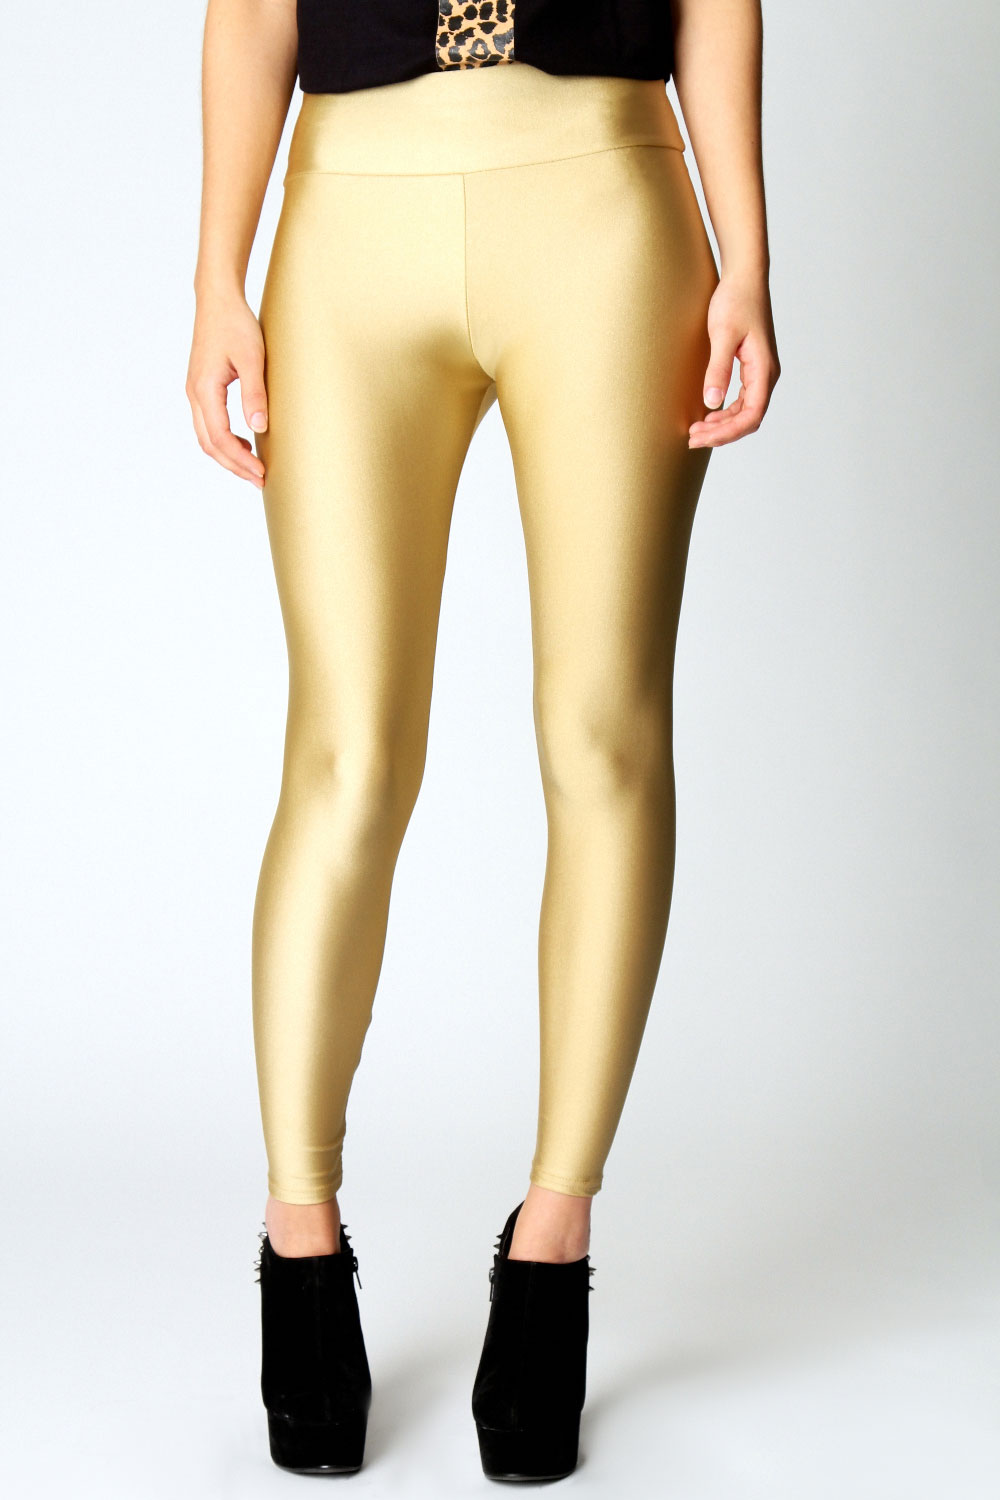 How to gold wear disco pants